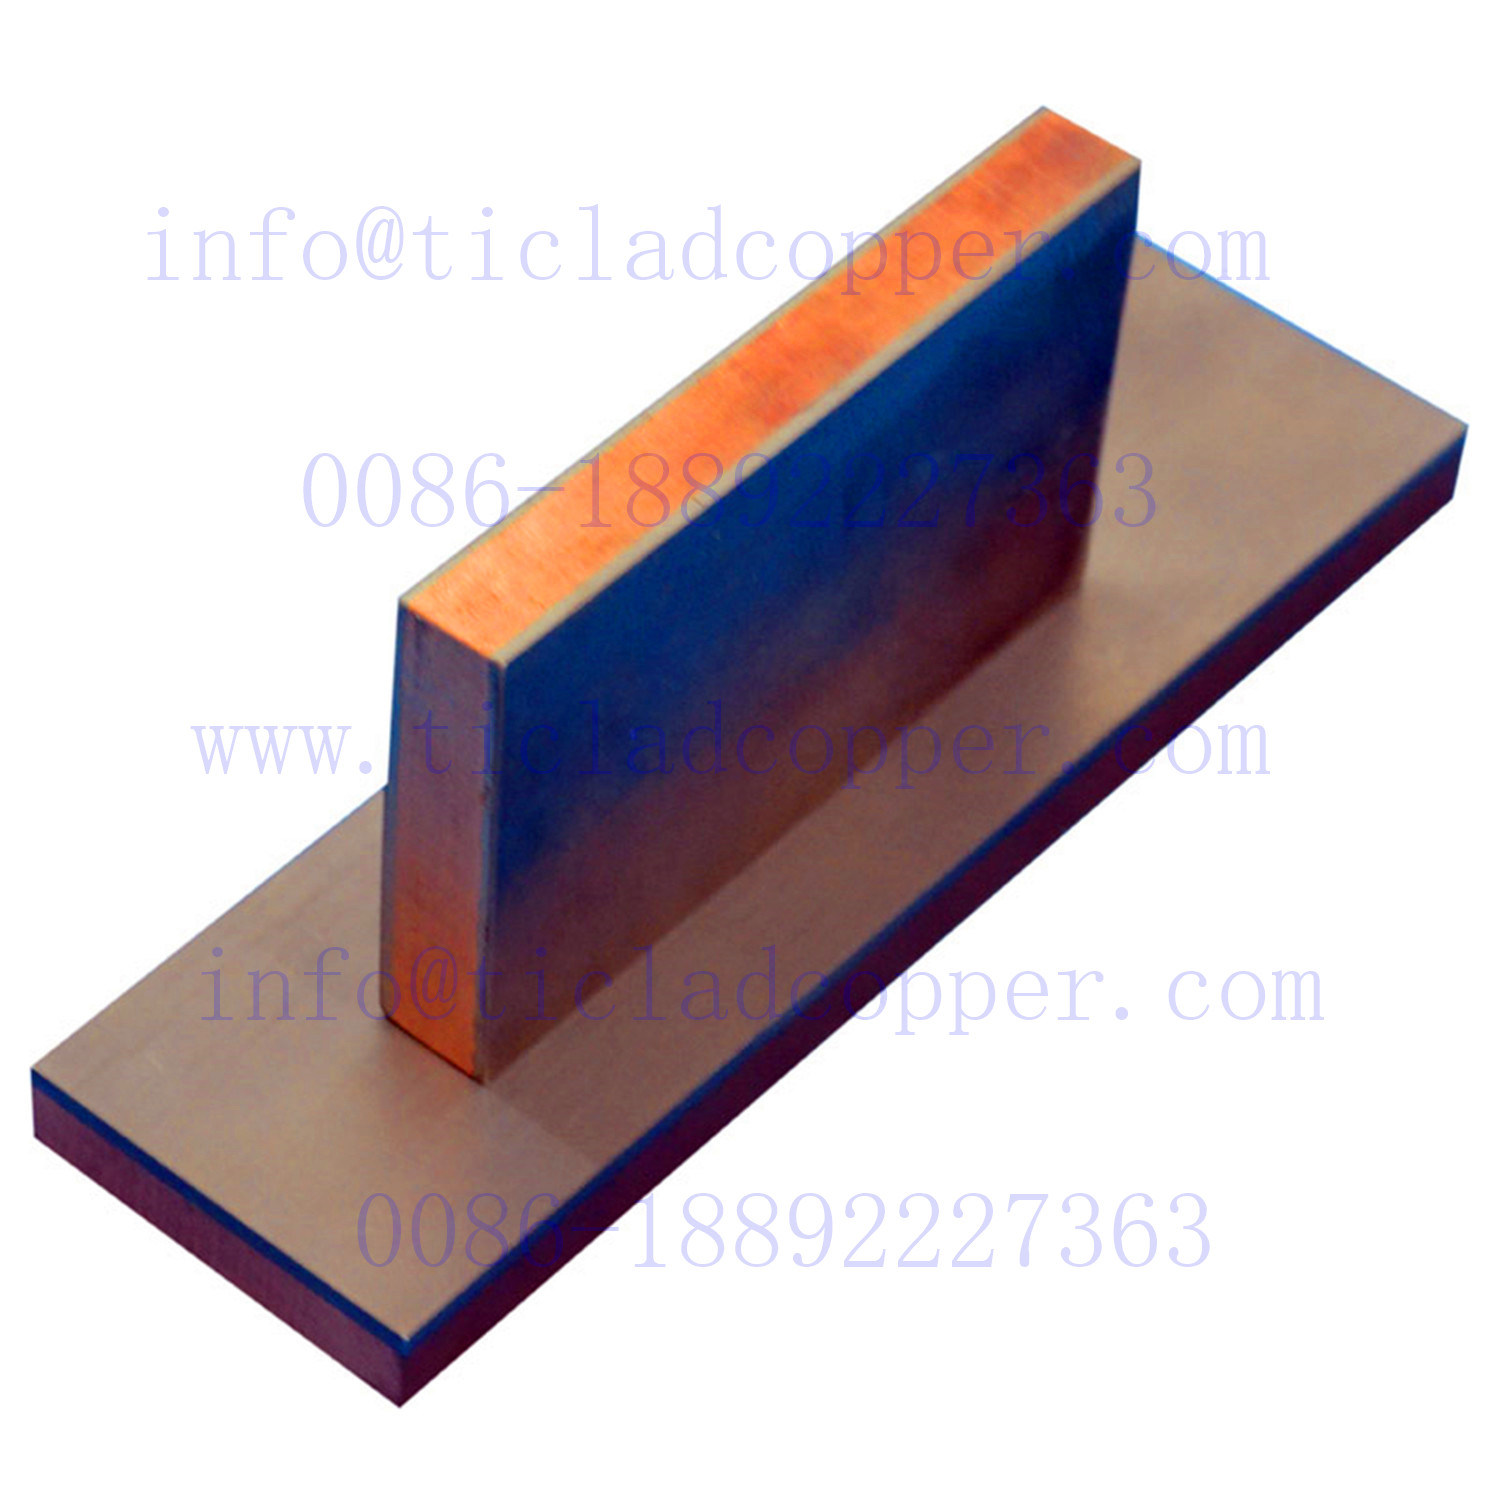 Metallurgical Bond/Explosion Bonding Titanium Clad Copper Sheet/Plates pictures & photos